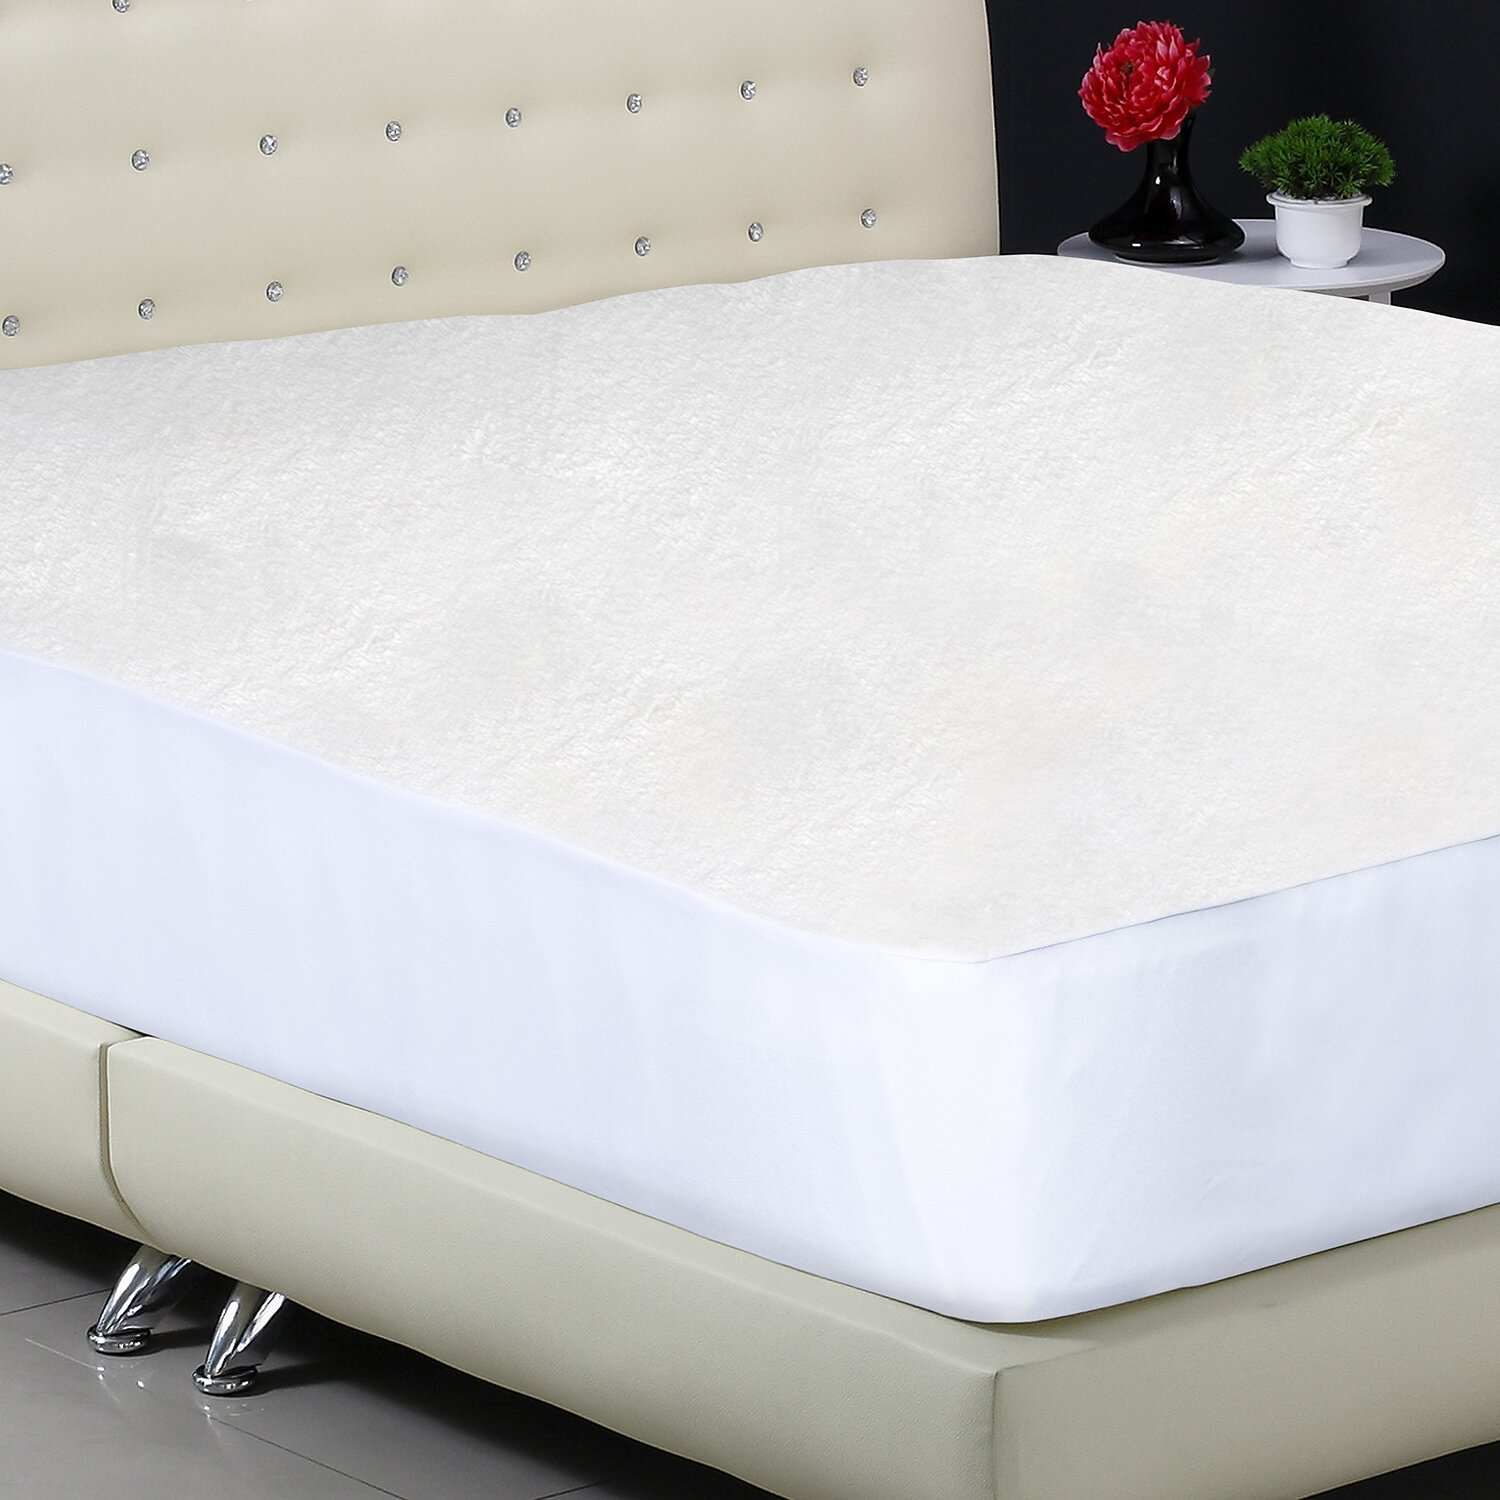 Protect a bed premium fitted mattress protector reviews for Bed bug and waterproof mattress protector